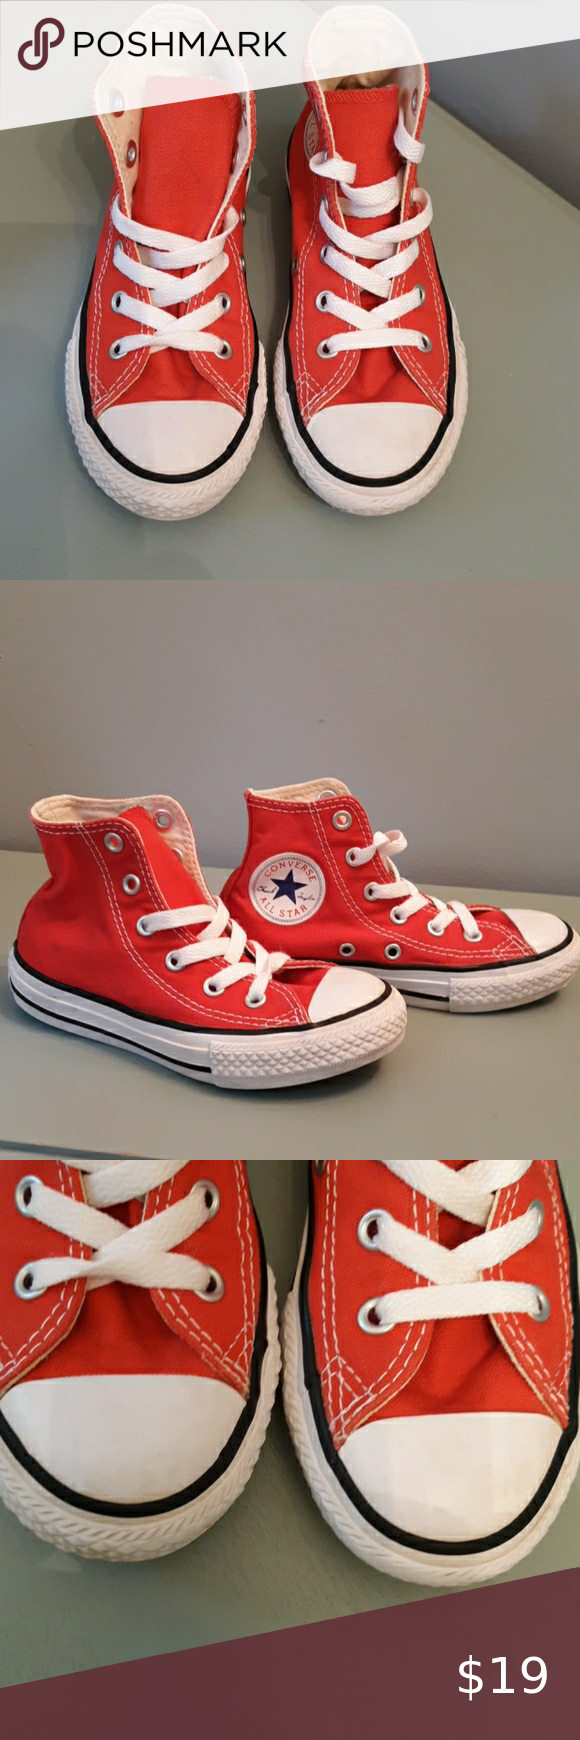 Converse All Star High Top Sneakers Red and white hightop size 11 ...